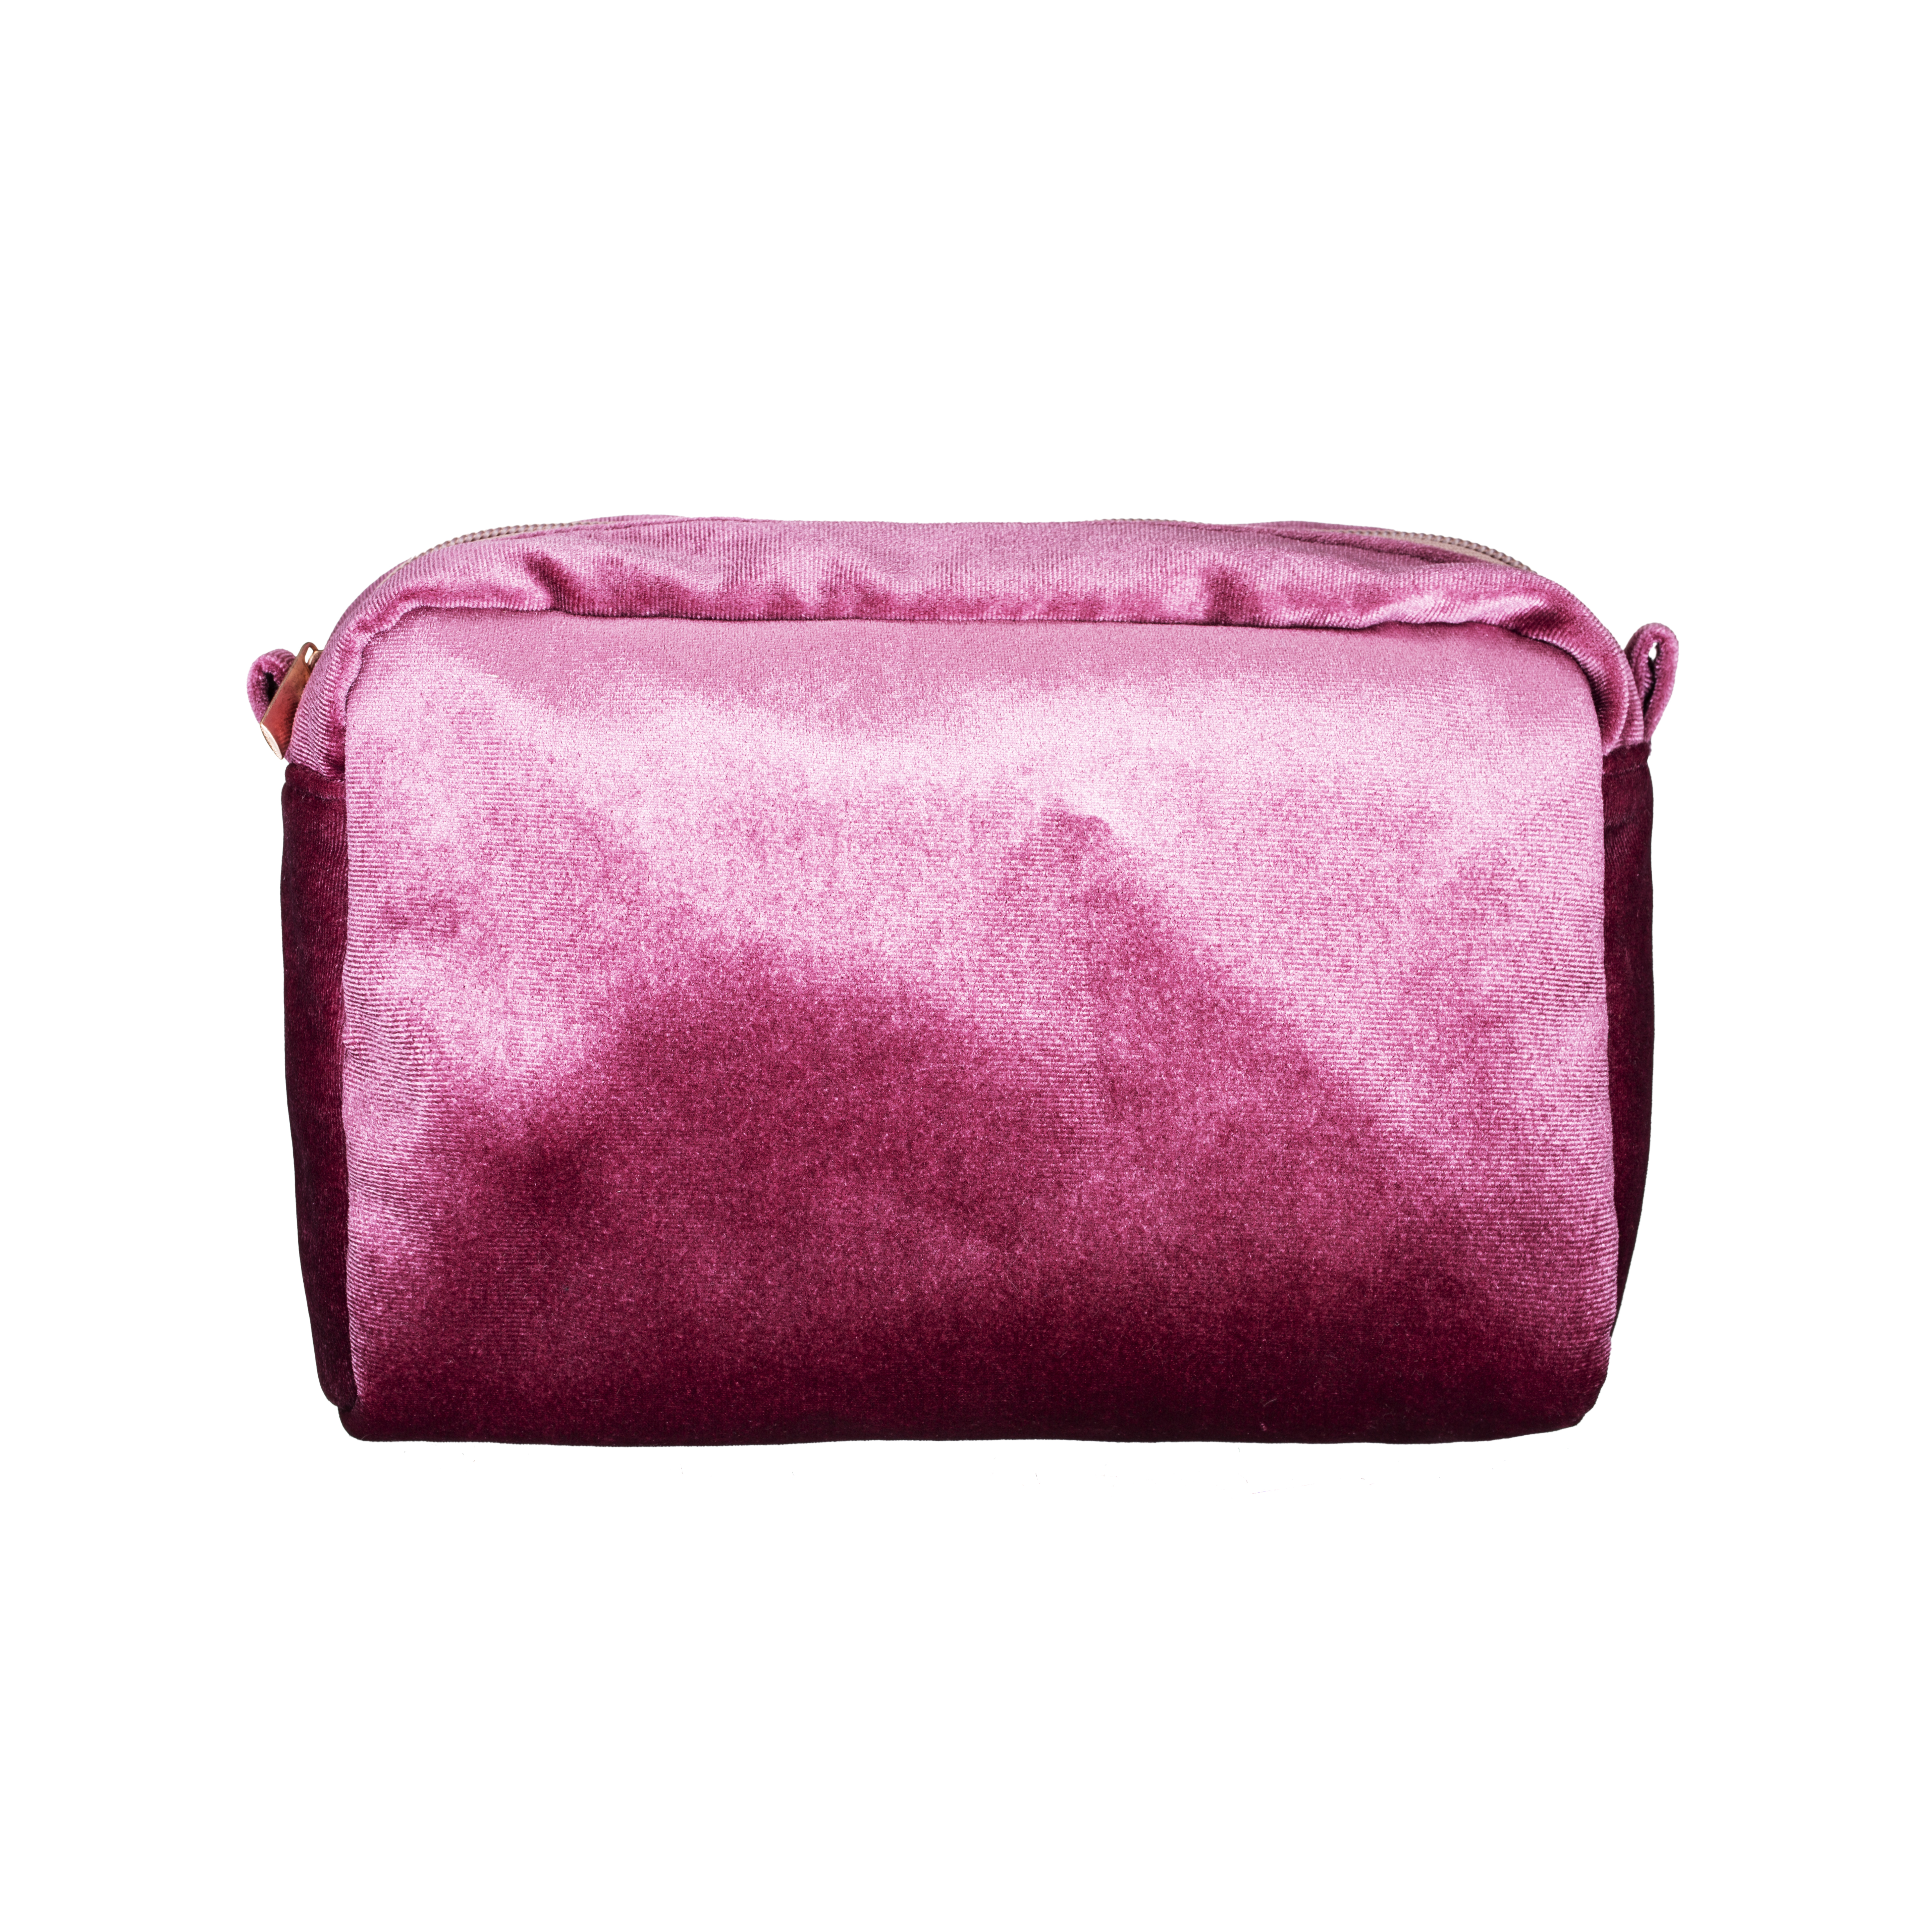 Limited Edition Velvet Beauty Bag